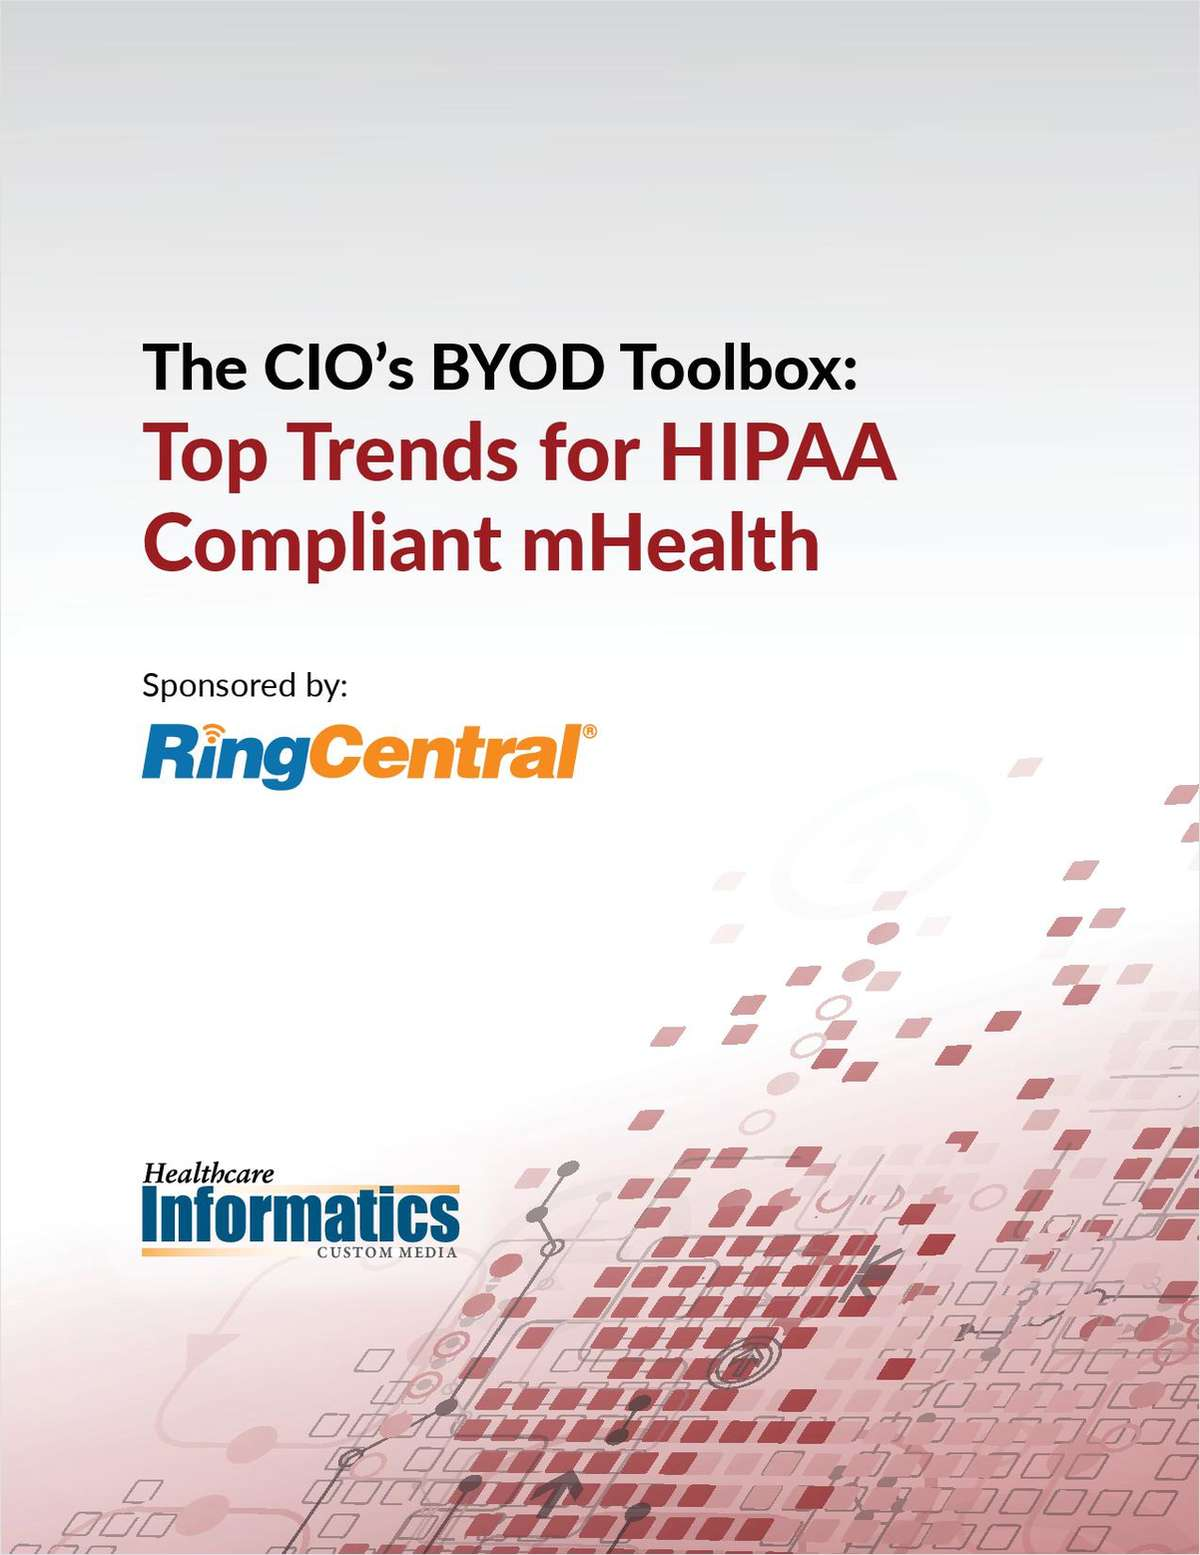 The CIO's BYOD Toolbox: Top Trends for HIPAA Compliant mHealth